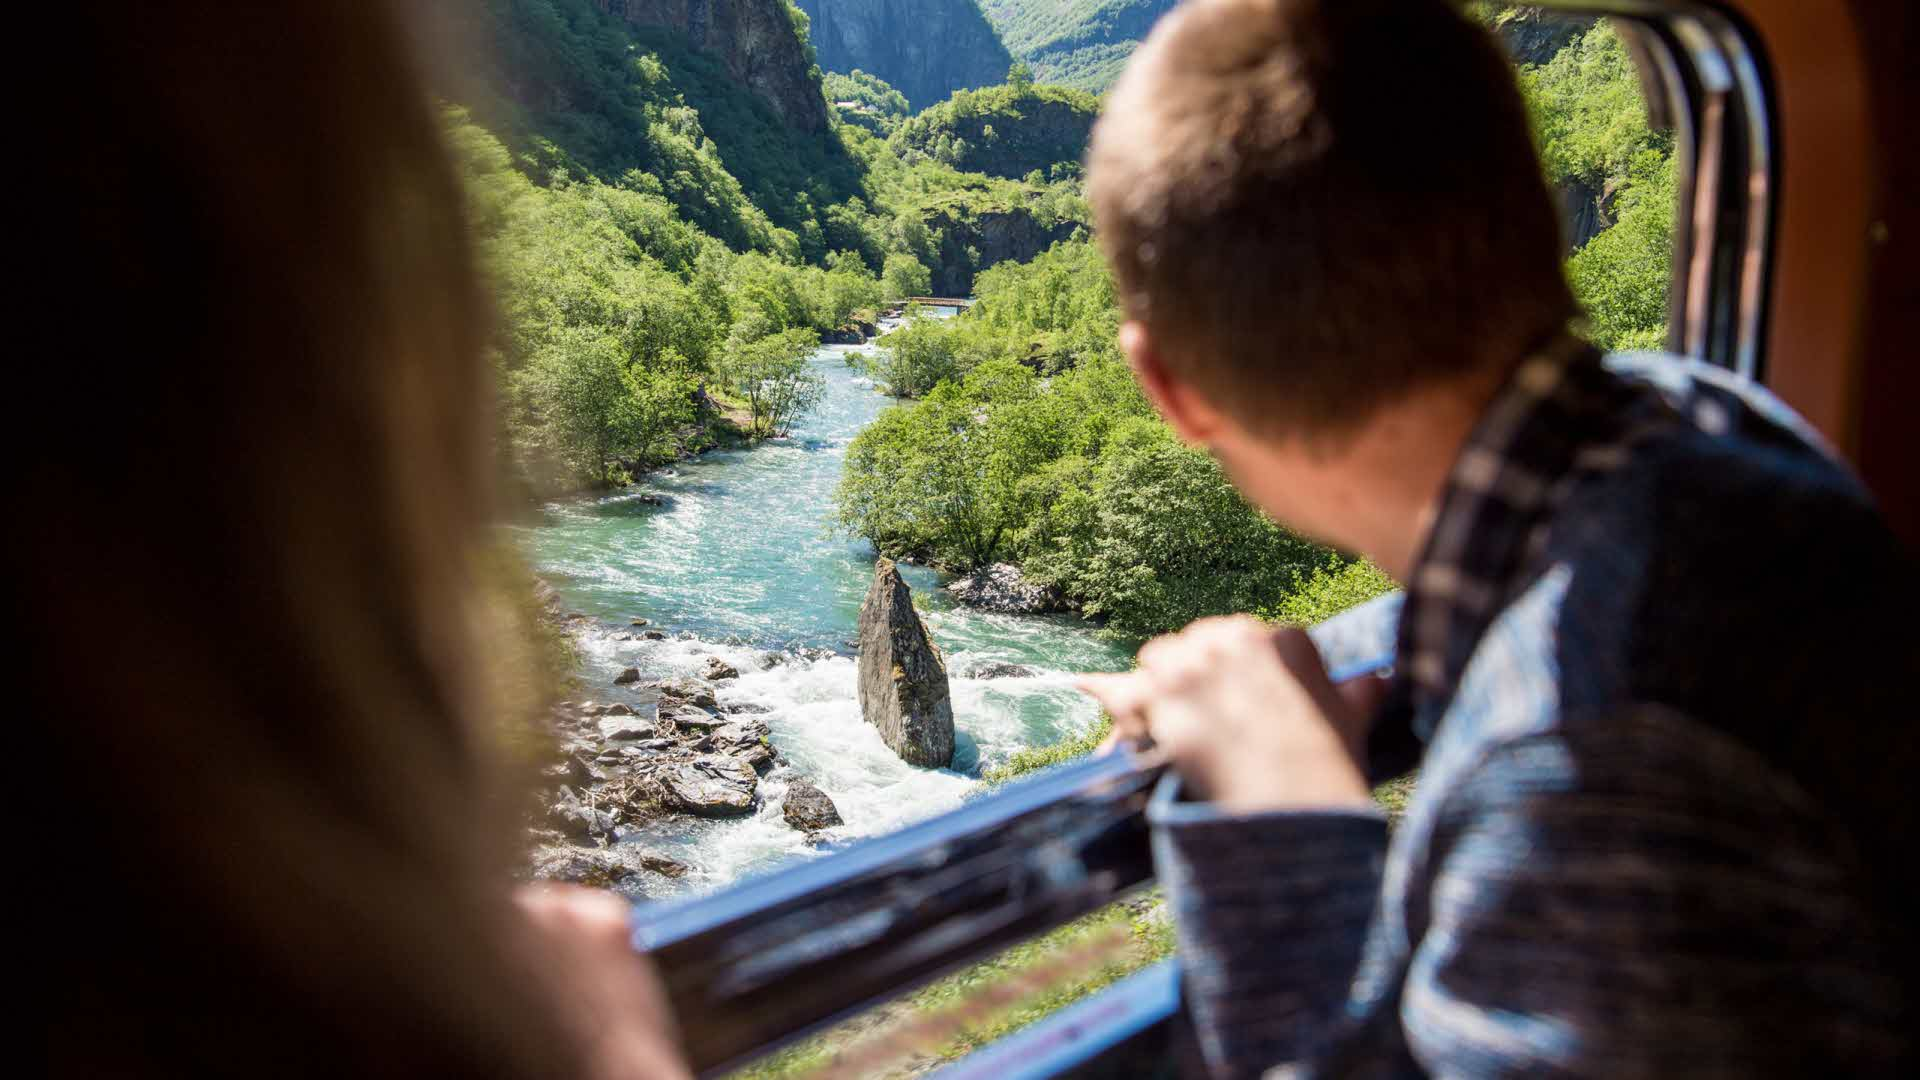 Couple looking at 'Vetleøya' rock in Flam river as passing with the Flam railway